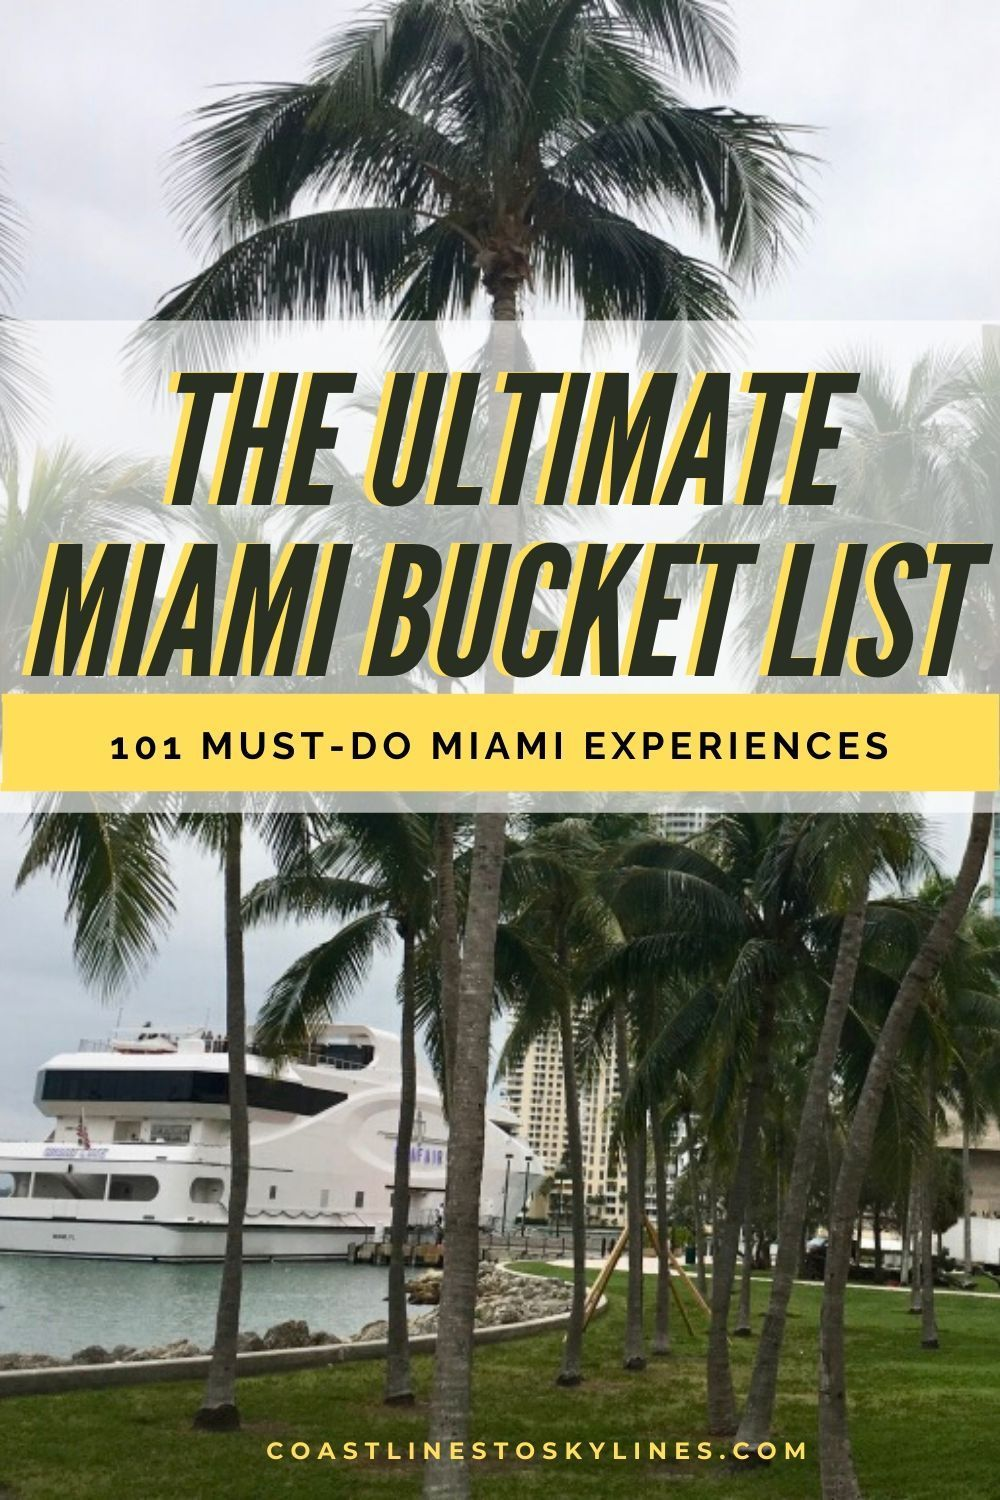 101 Things To Do In Miami Your Ultimate Miami Bucket List Coastlines To Skylines Miami Travel Guide Miami Travel Miami Beach Attractions